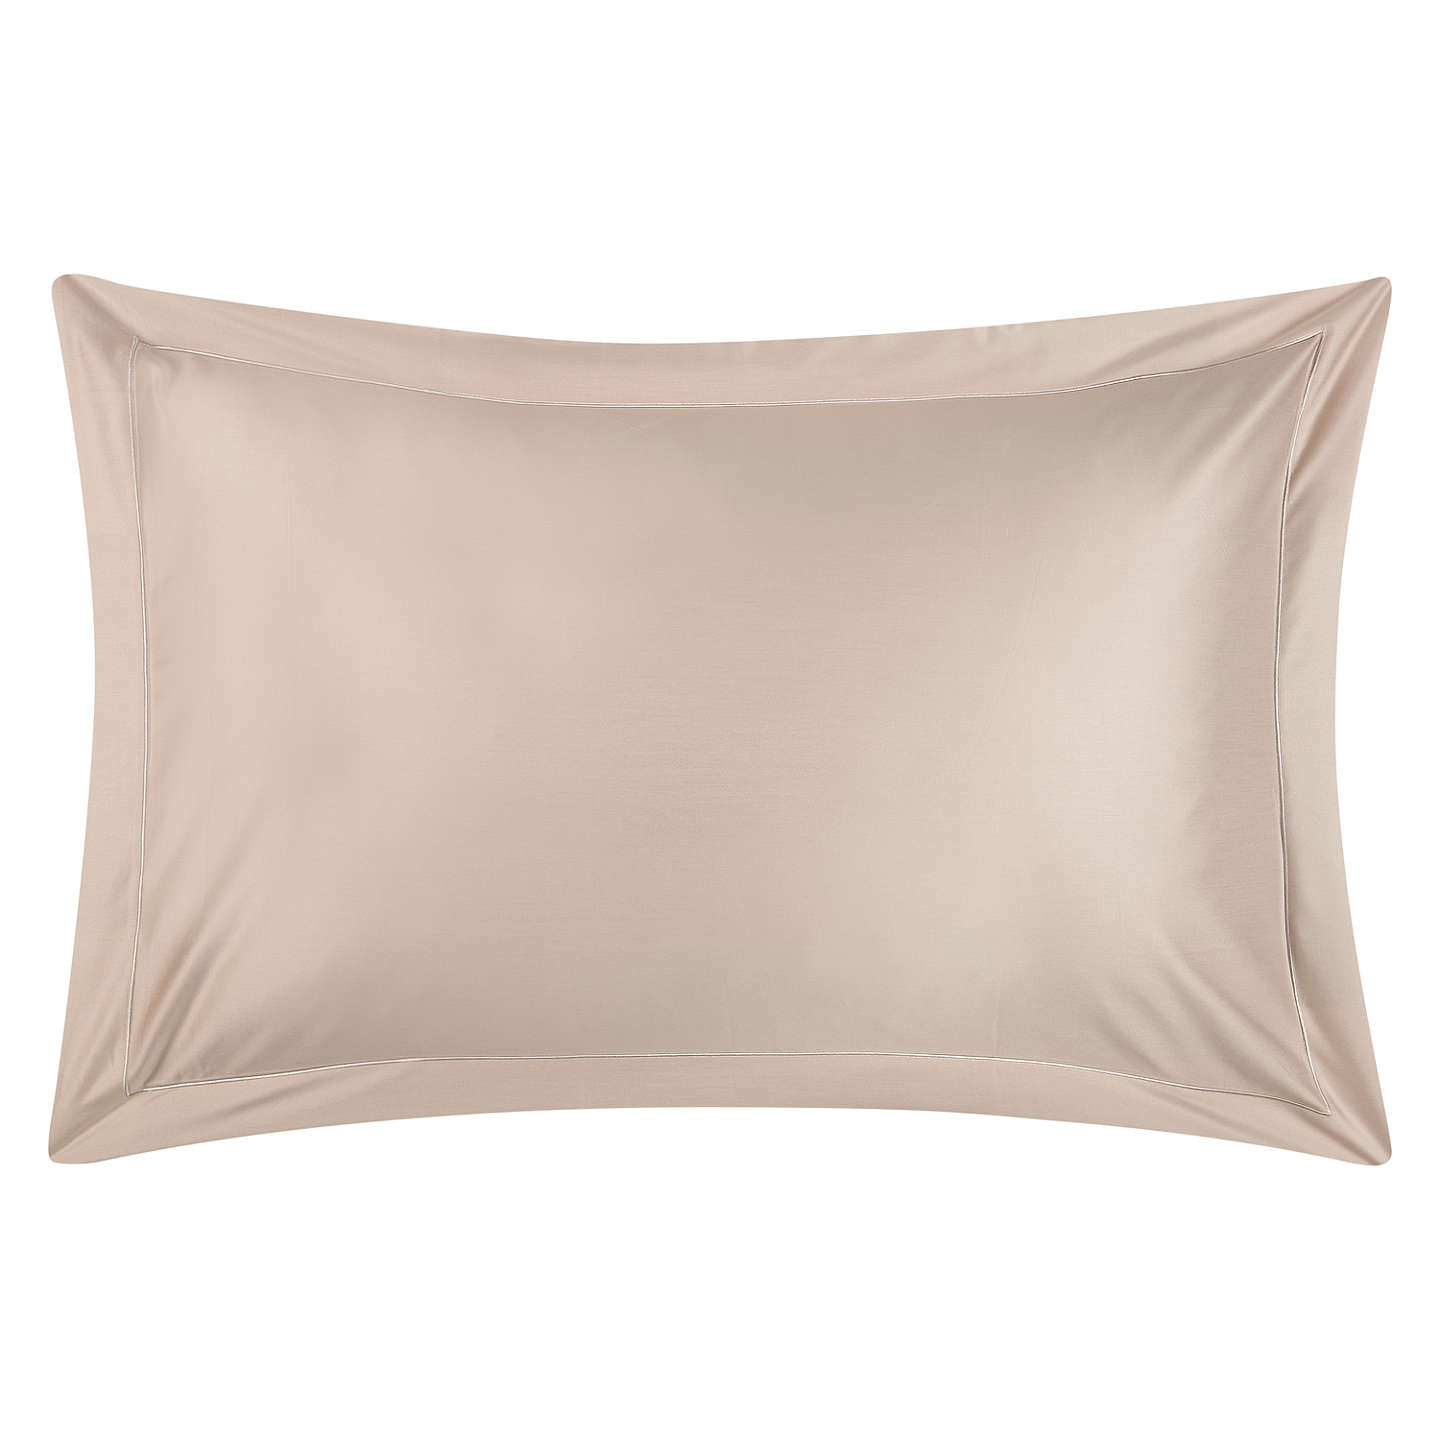 BuyJohn Lewis 400 Thread Count Crisp & Fresh Egyptian Cotton Standard Pillowcase, Latte Online at johnlewis.com